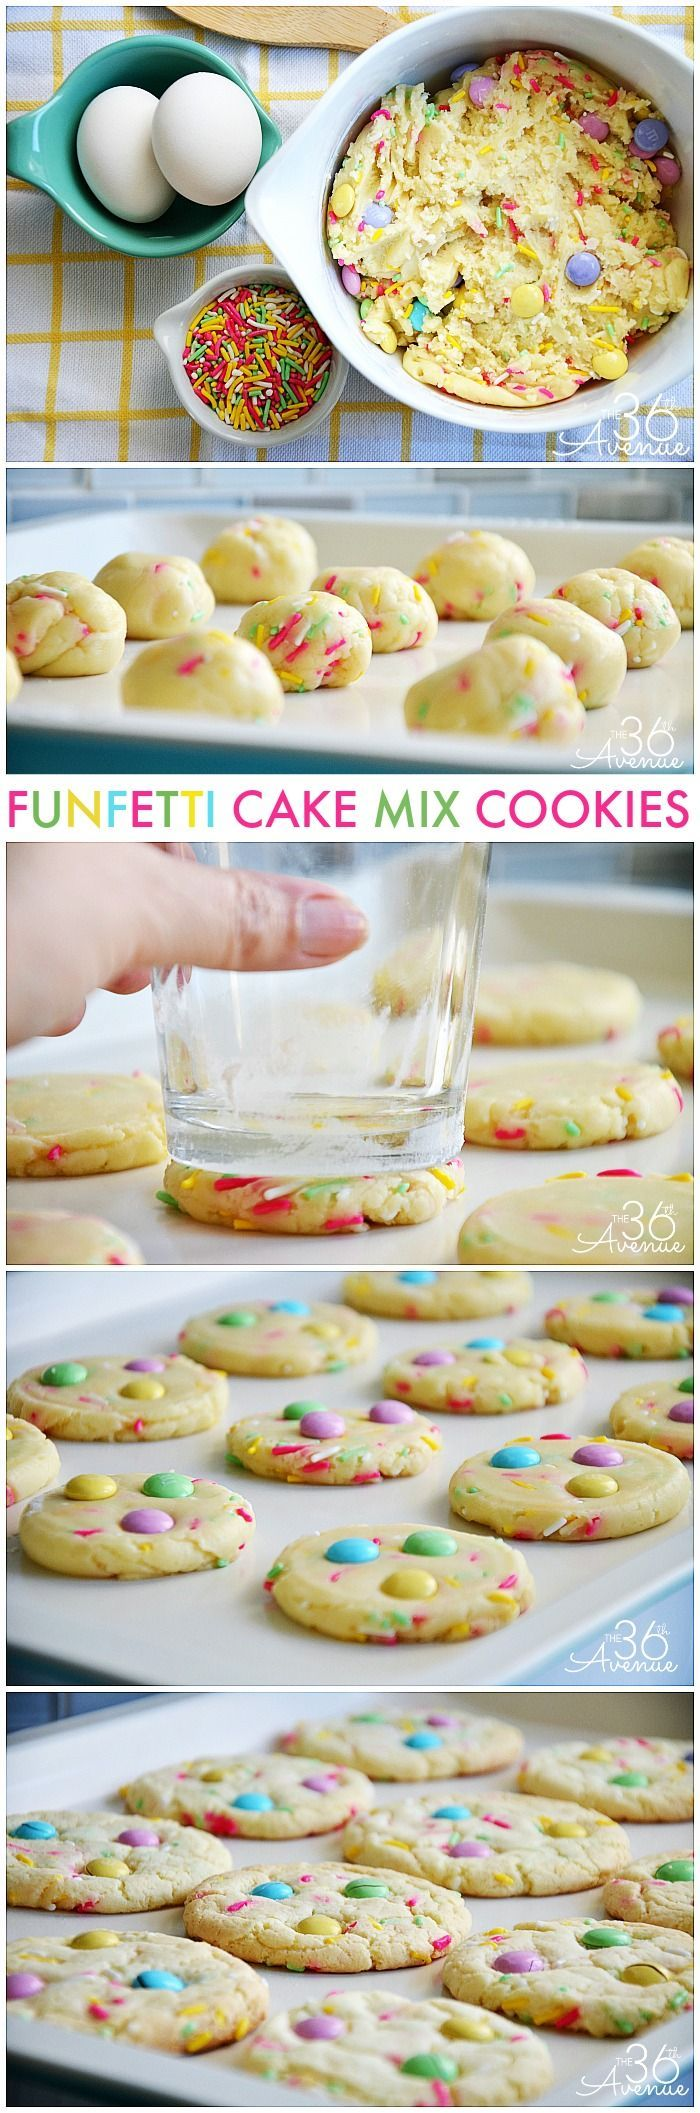 Super fast easy cookie recipes